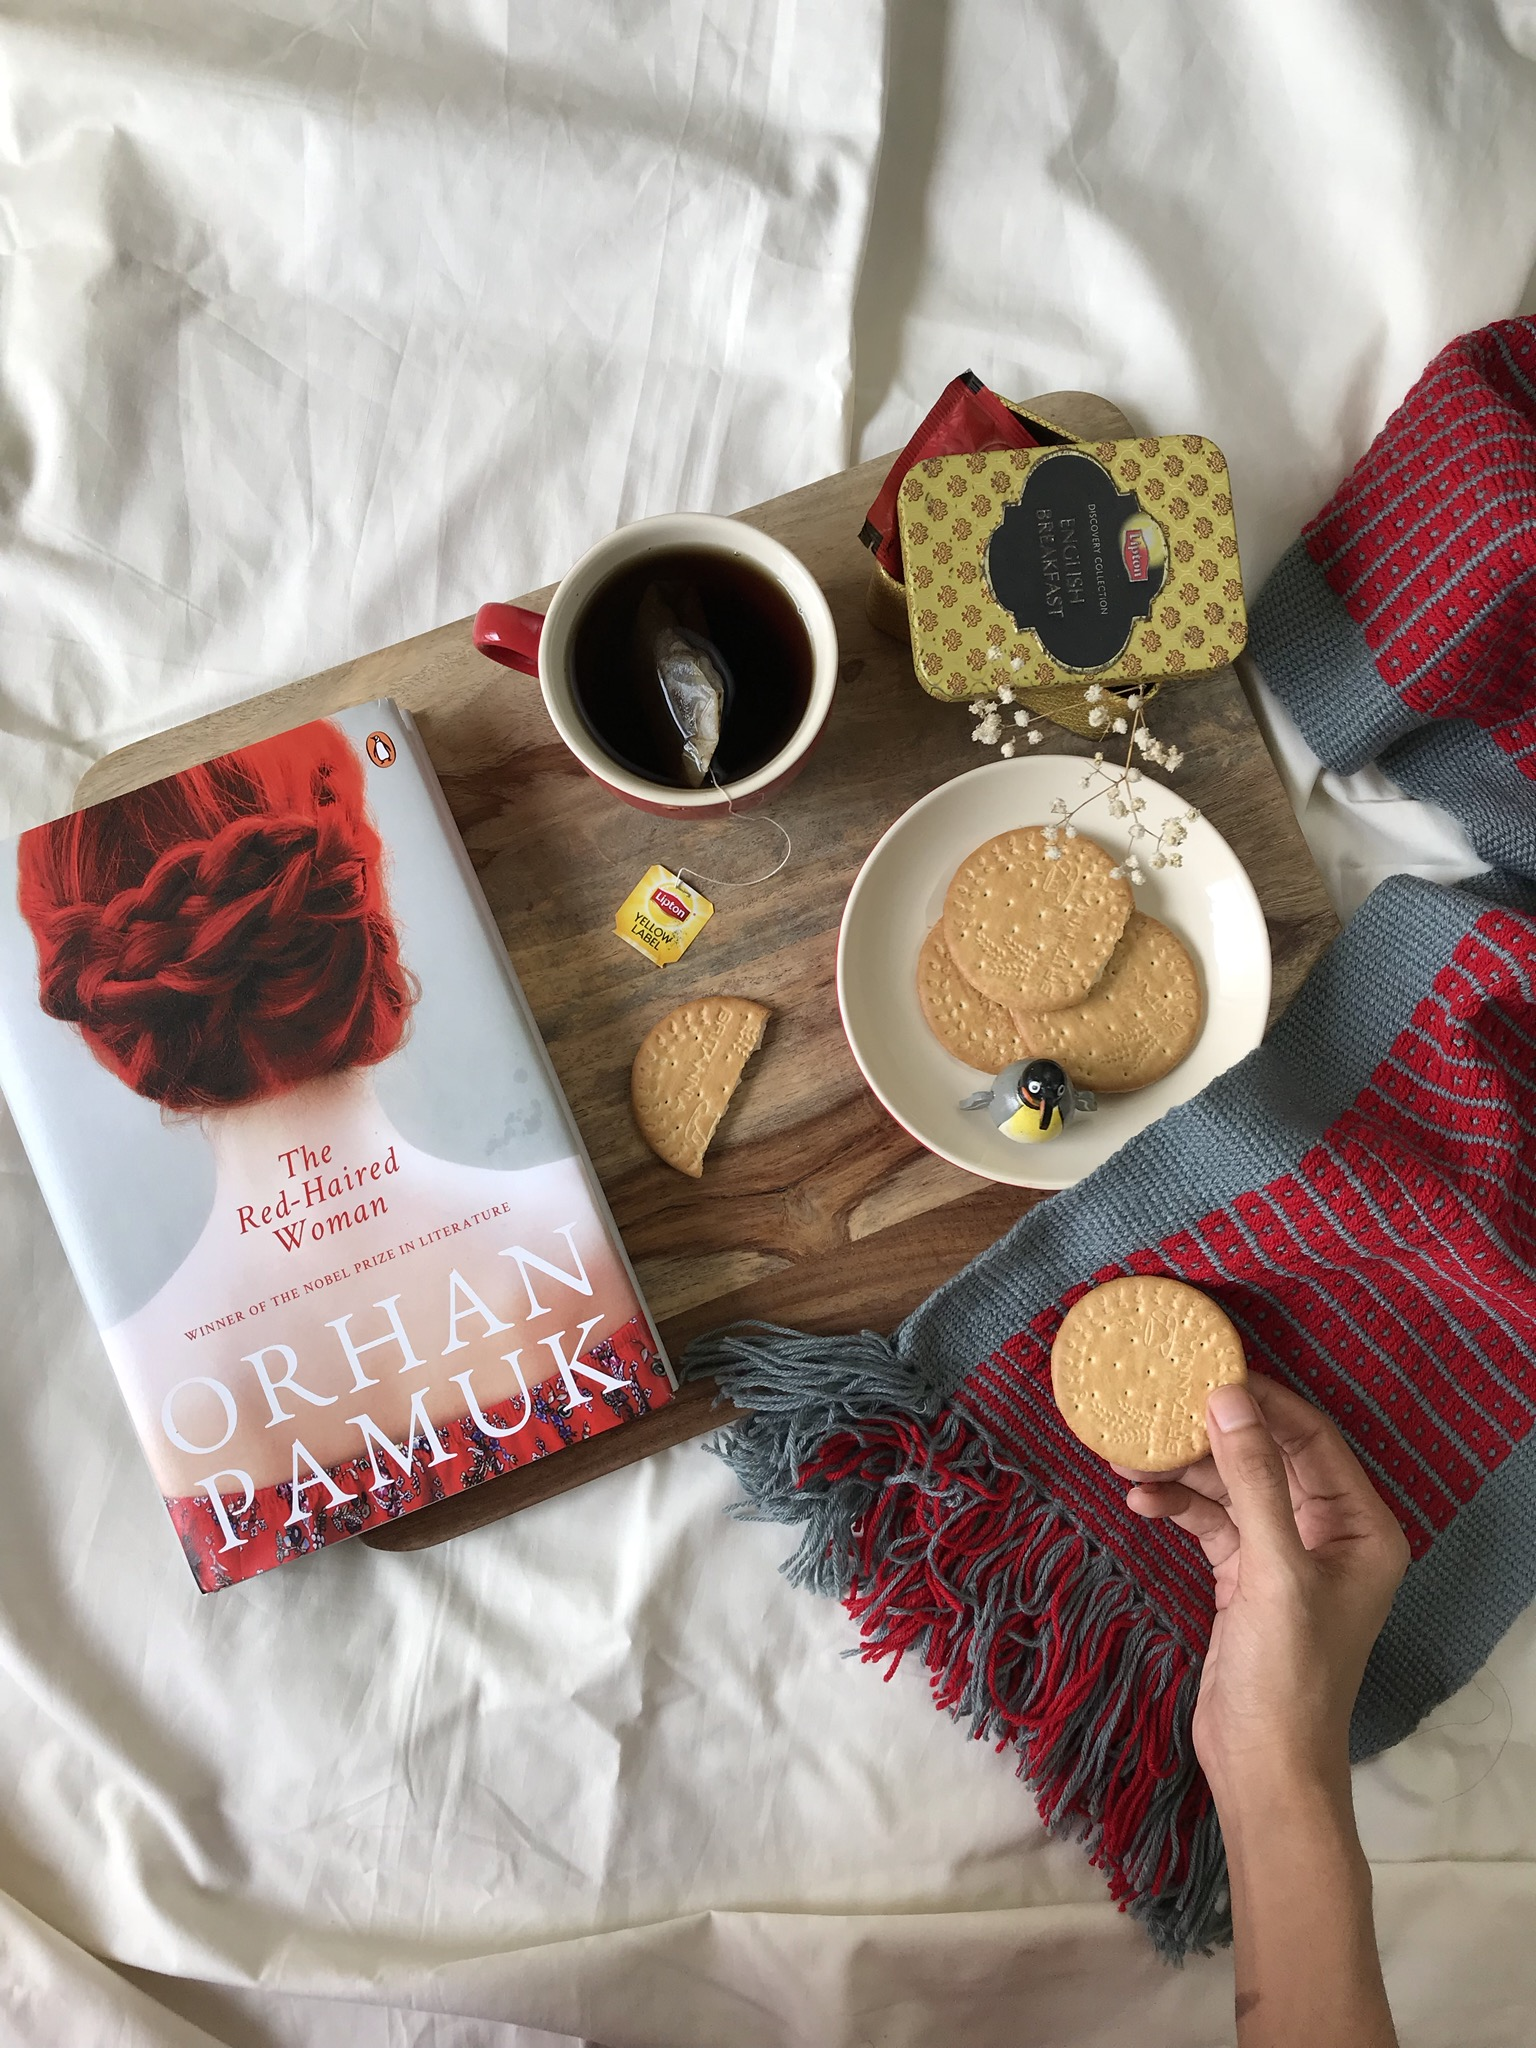 The Red Haired Woman by Orhan Pamuk